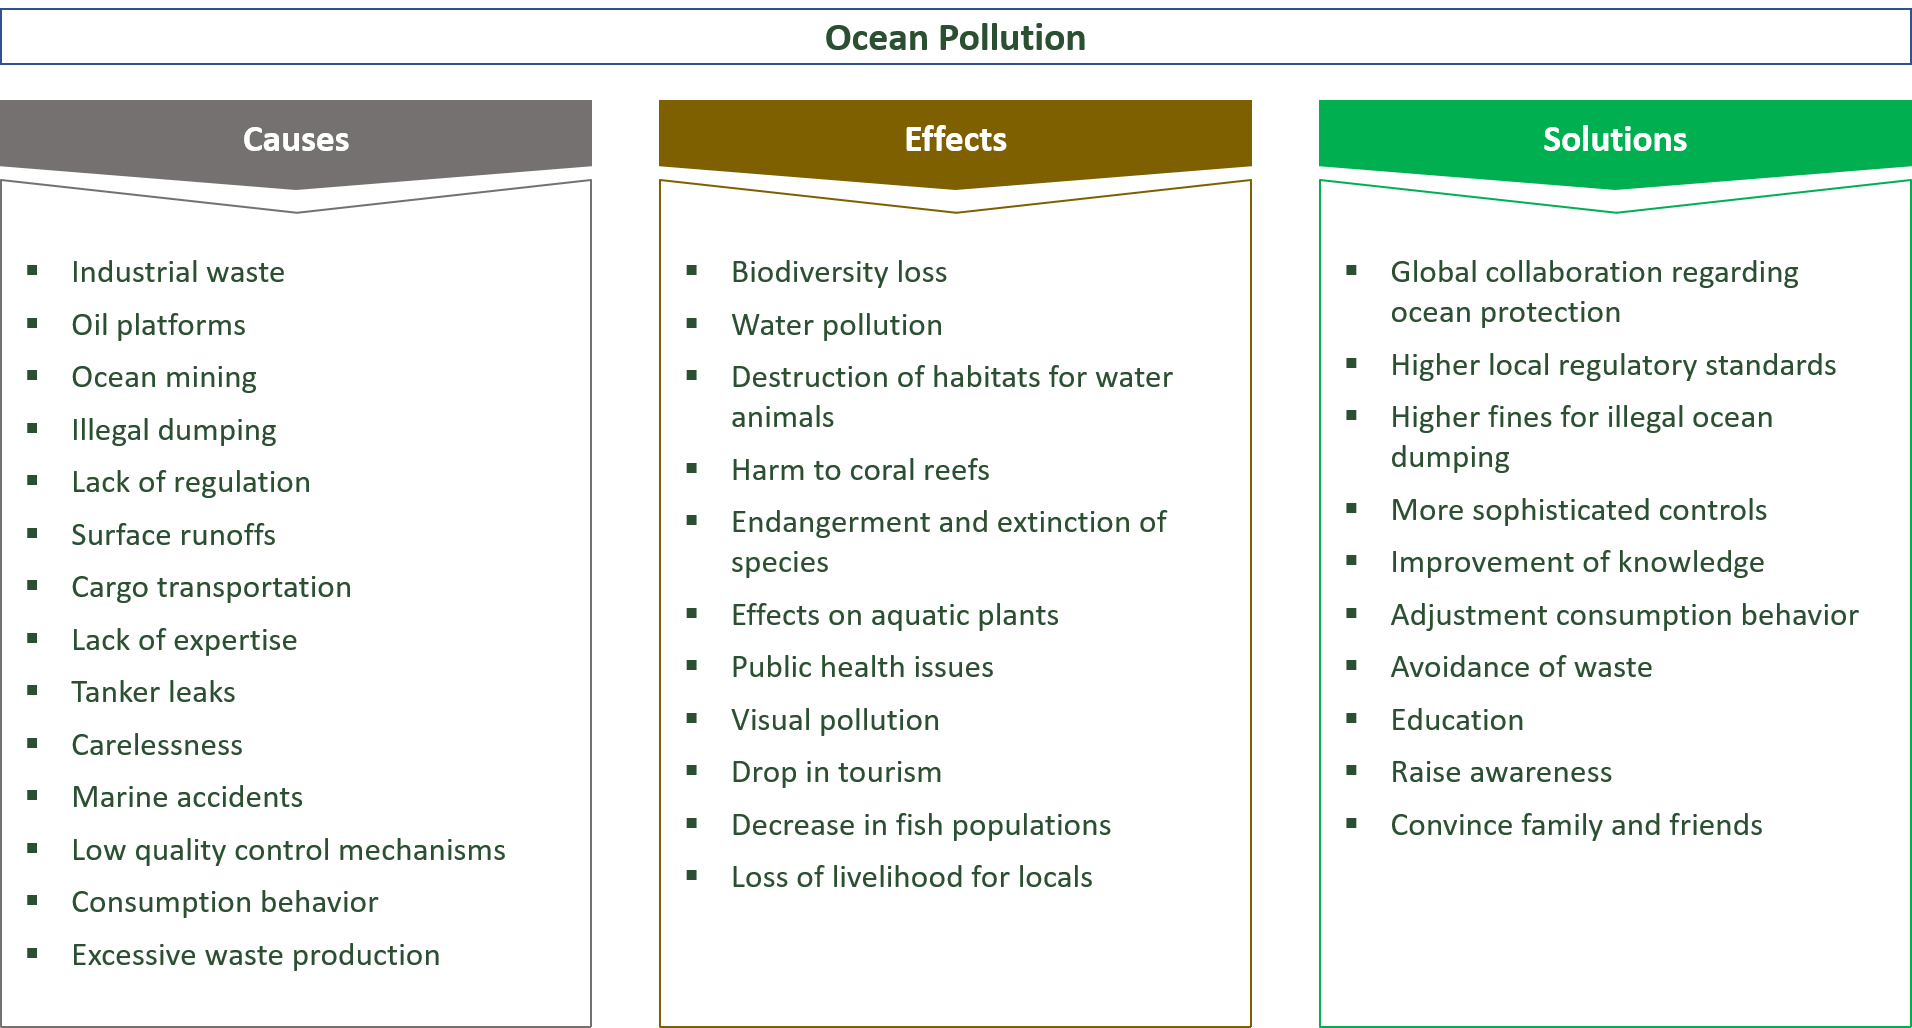 causes, effects & solutions regarding ocean pollution